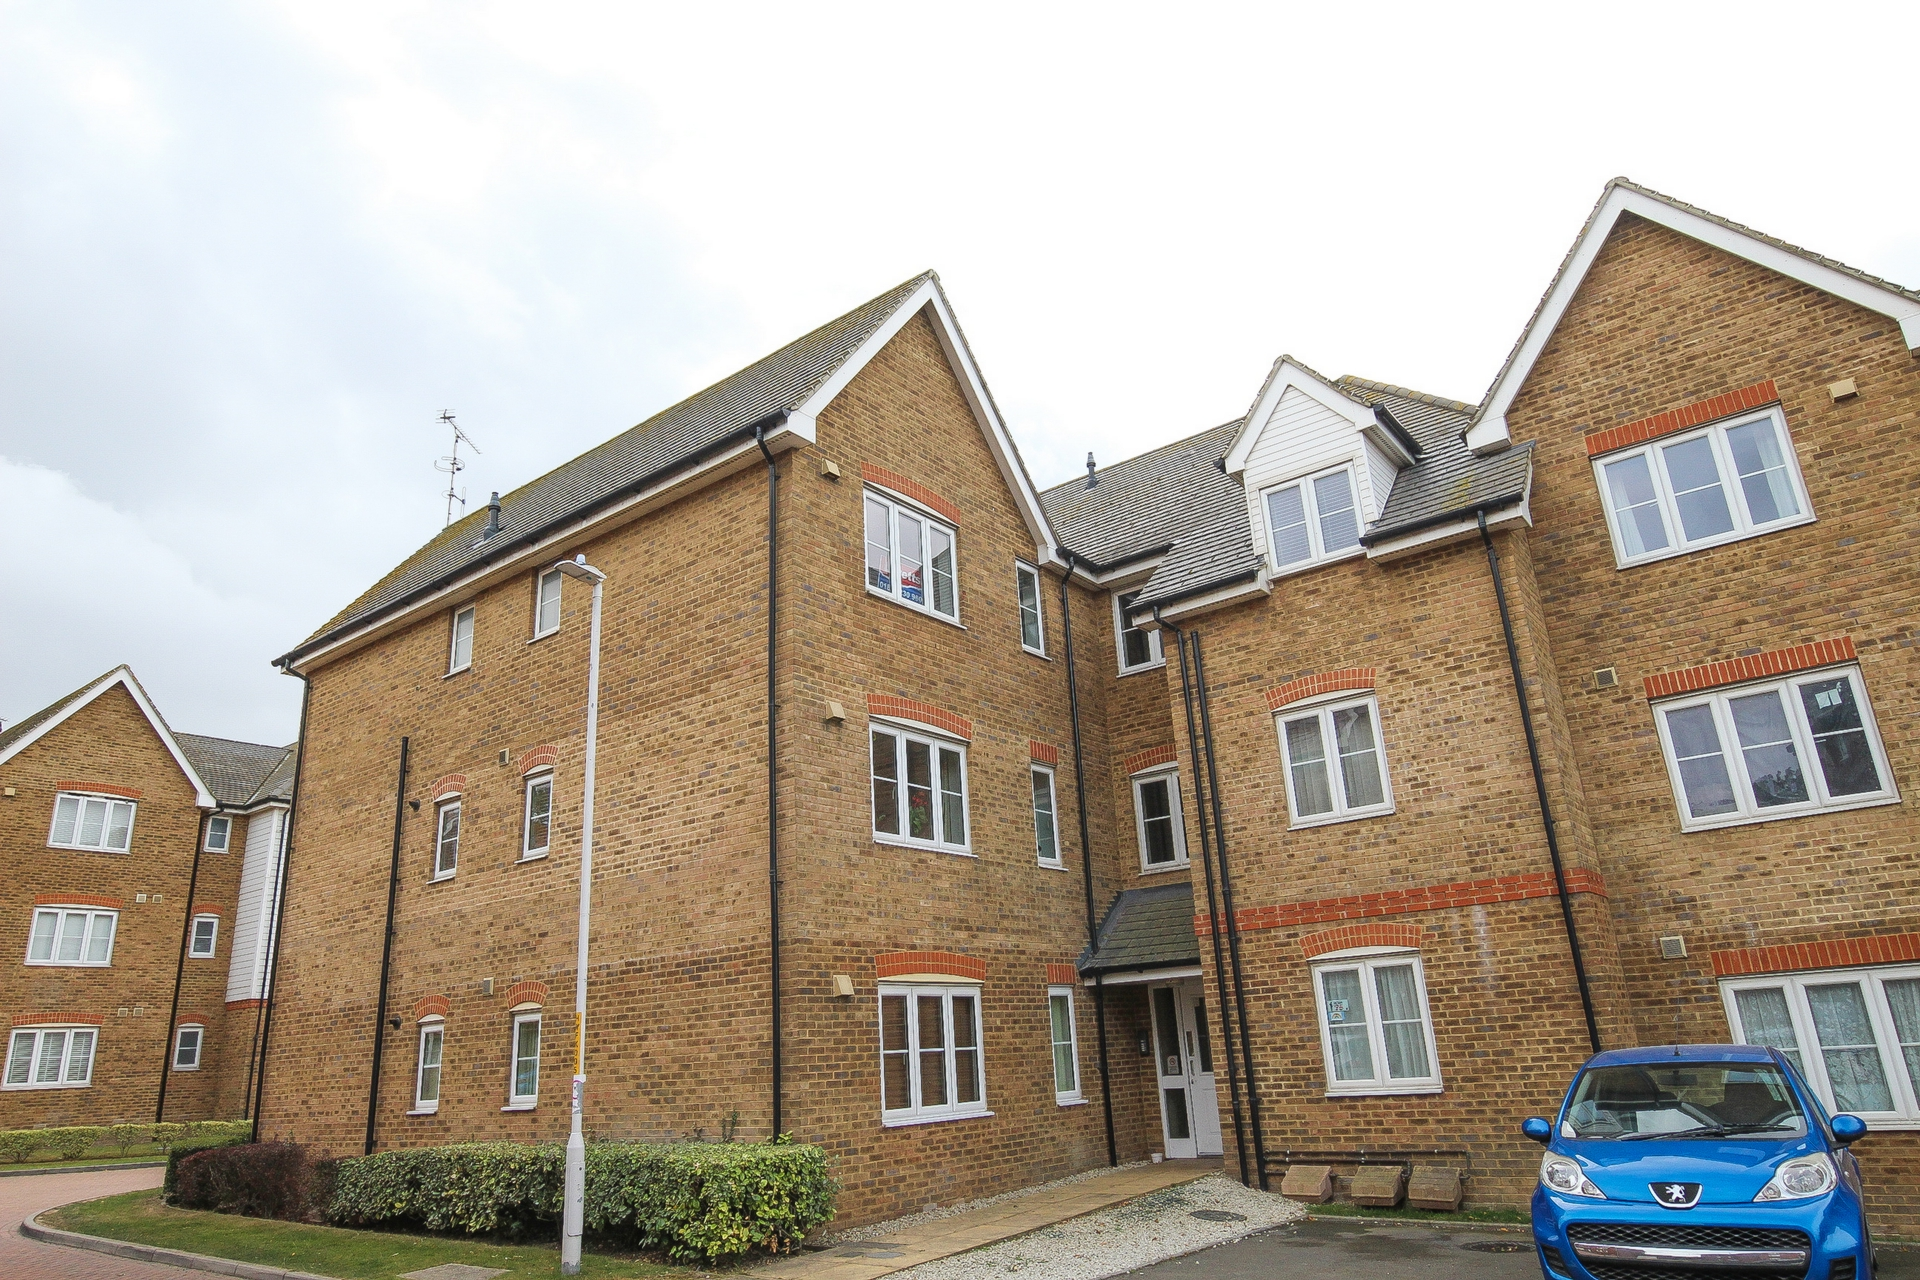 2 bed flat to rent in Wherry Close, Margate, CT9, CT9